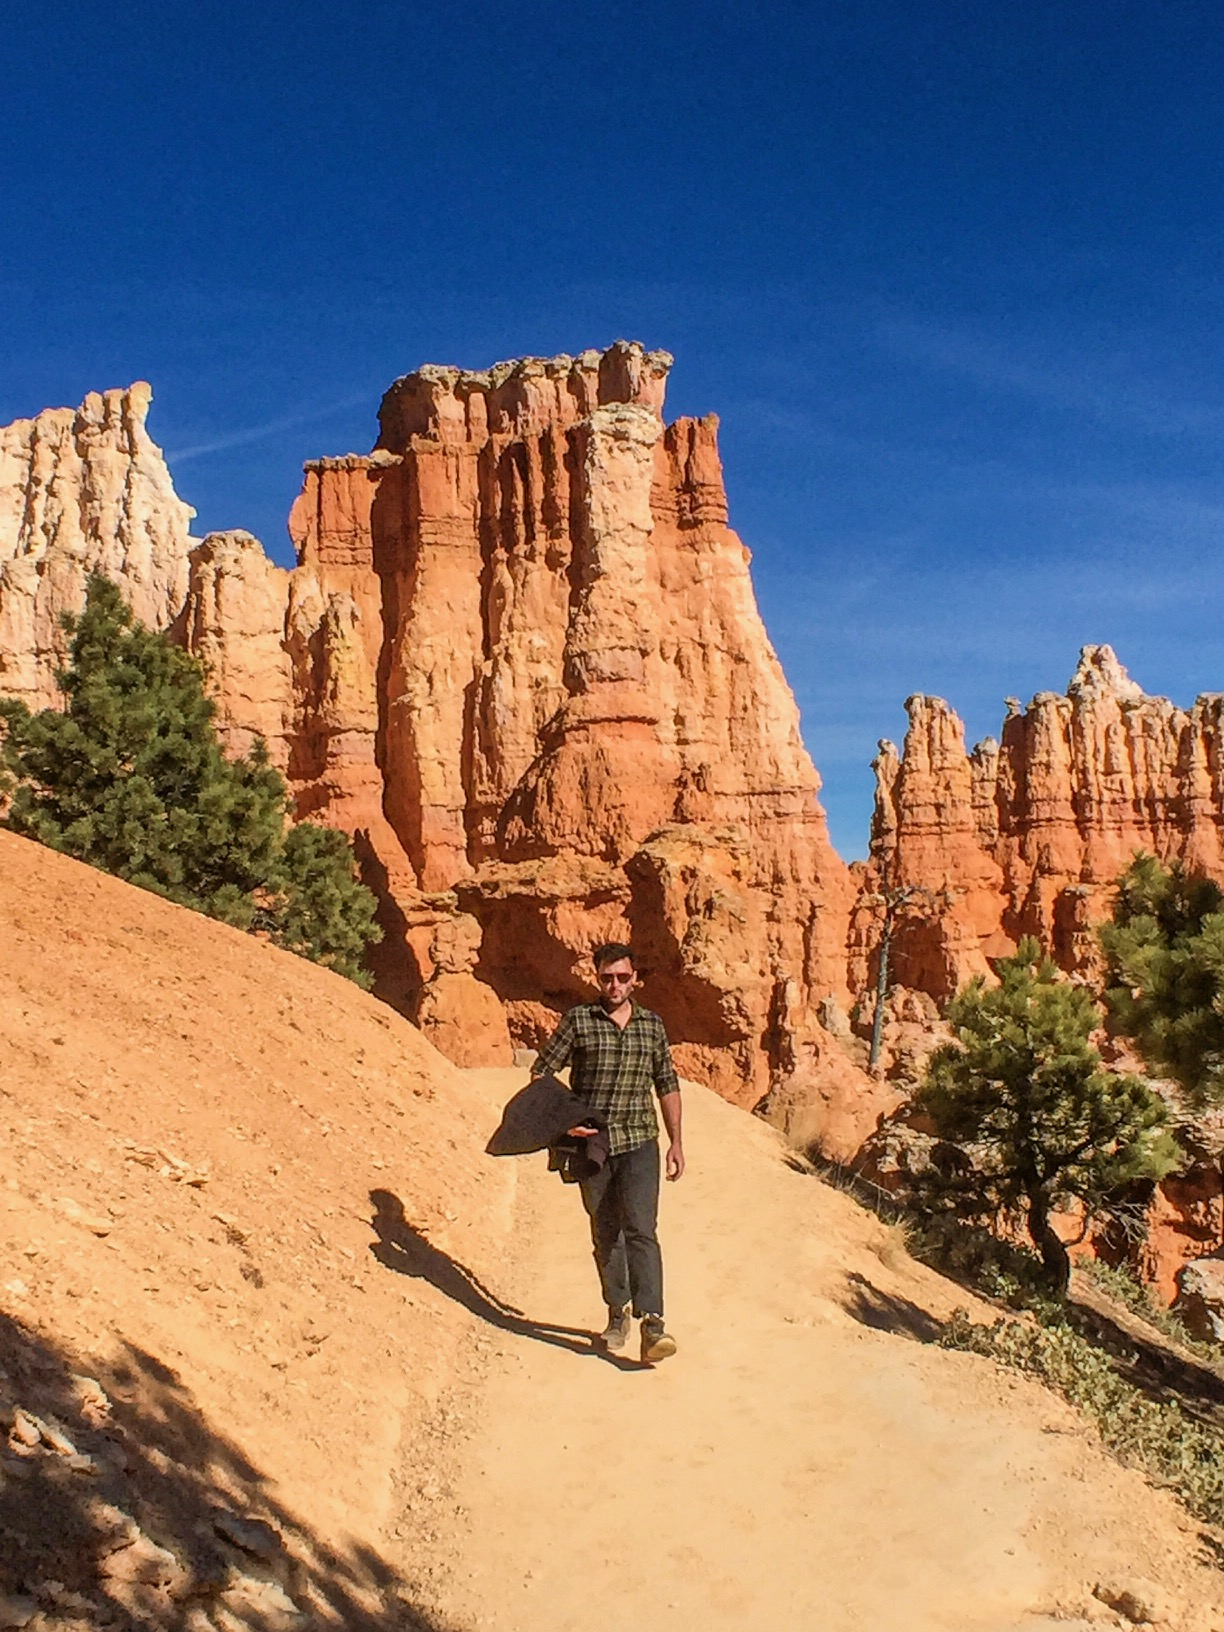 Bryce Canyon has never looked so good